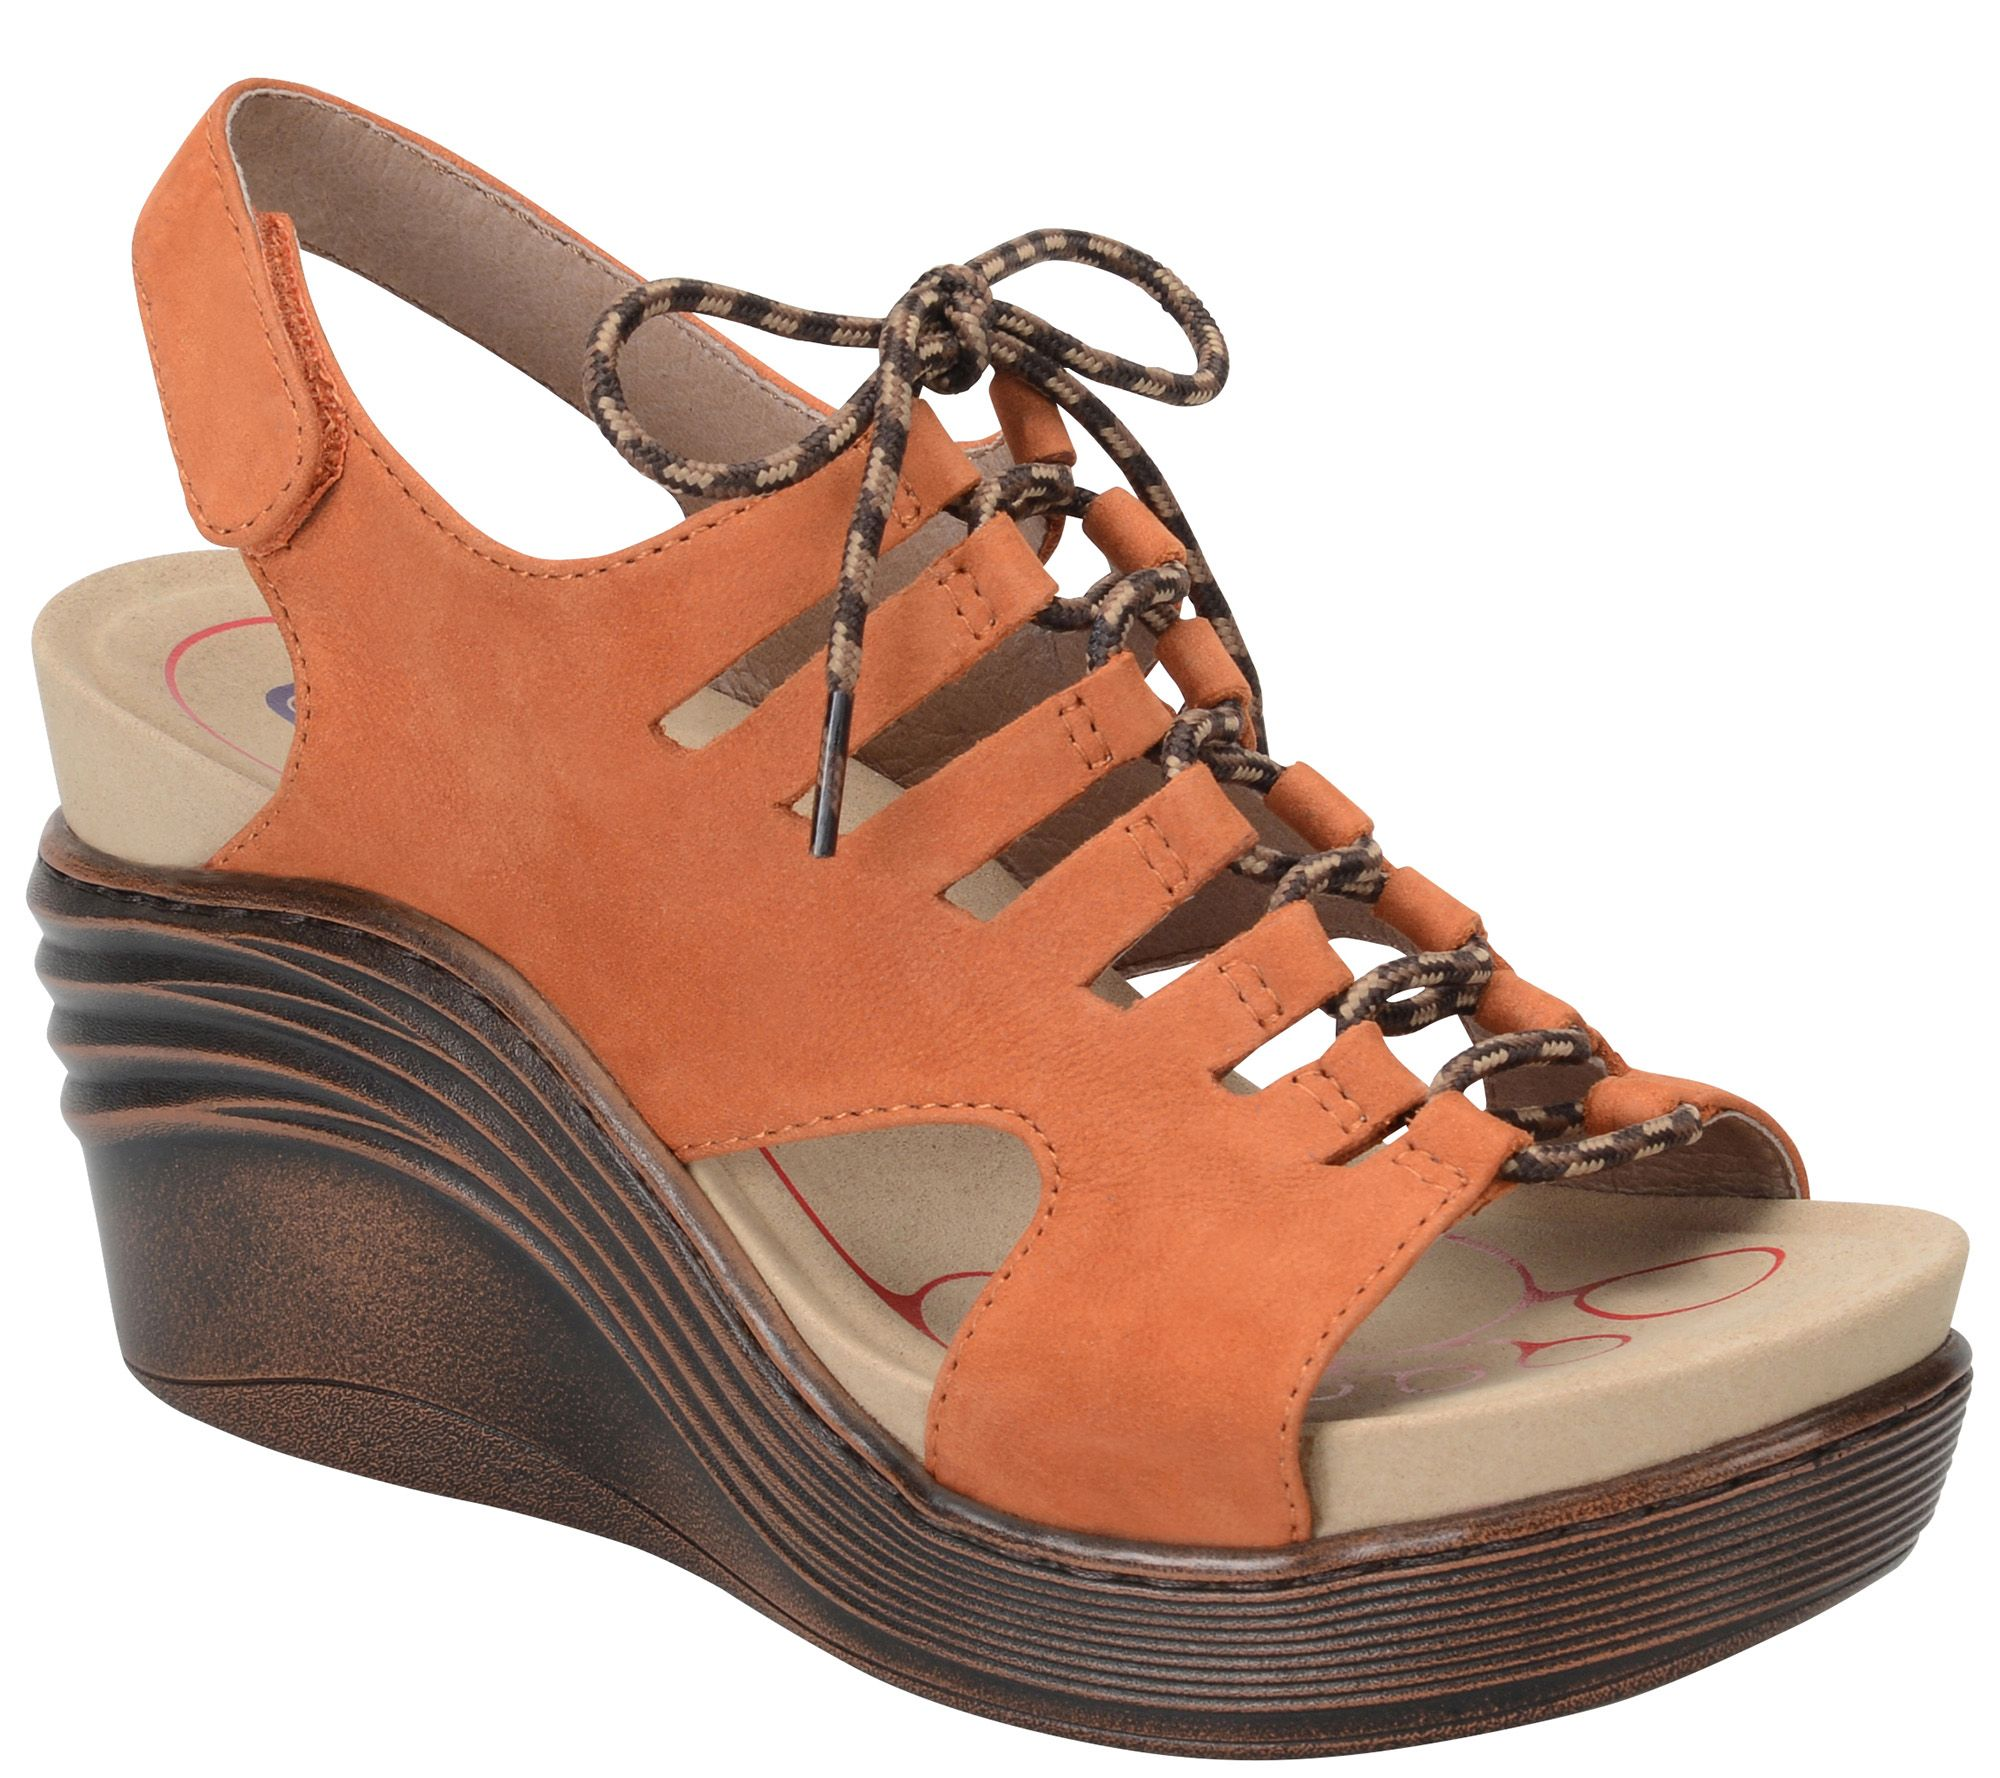 c71f3887f8e1 Bionica Lace-up Leather Wedge Sandals - Sirus - Page 1 — QVC.com